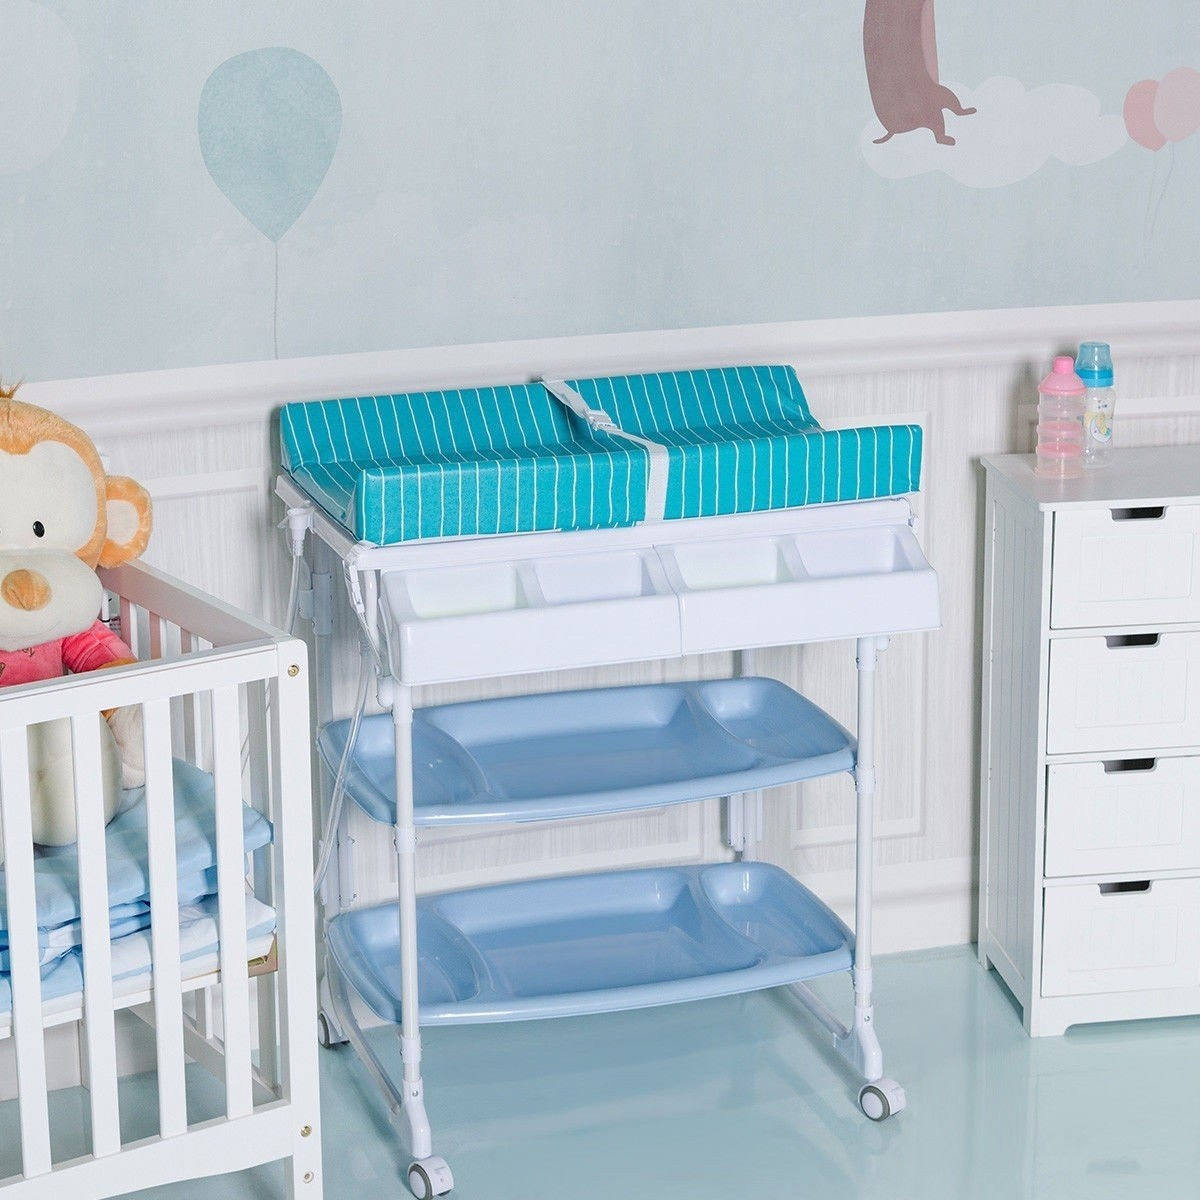 Folding Bath Stand Baby Baby: Buy Online from Fishpond.com.fj